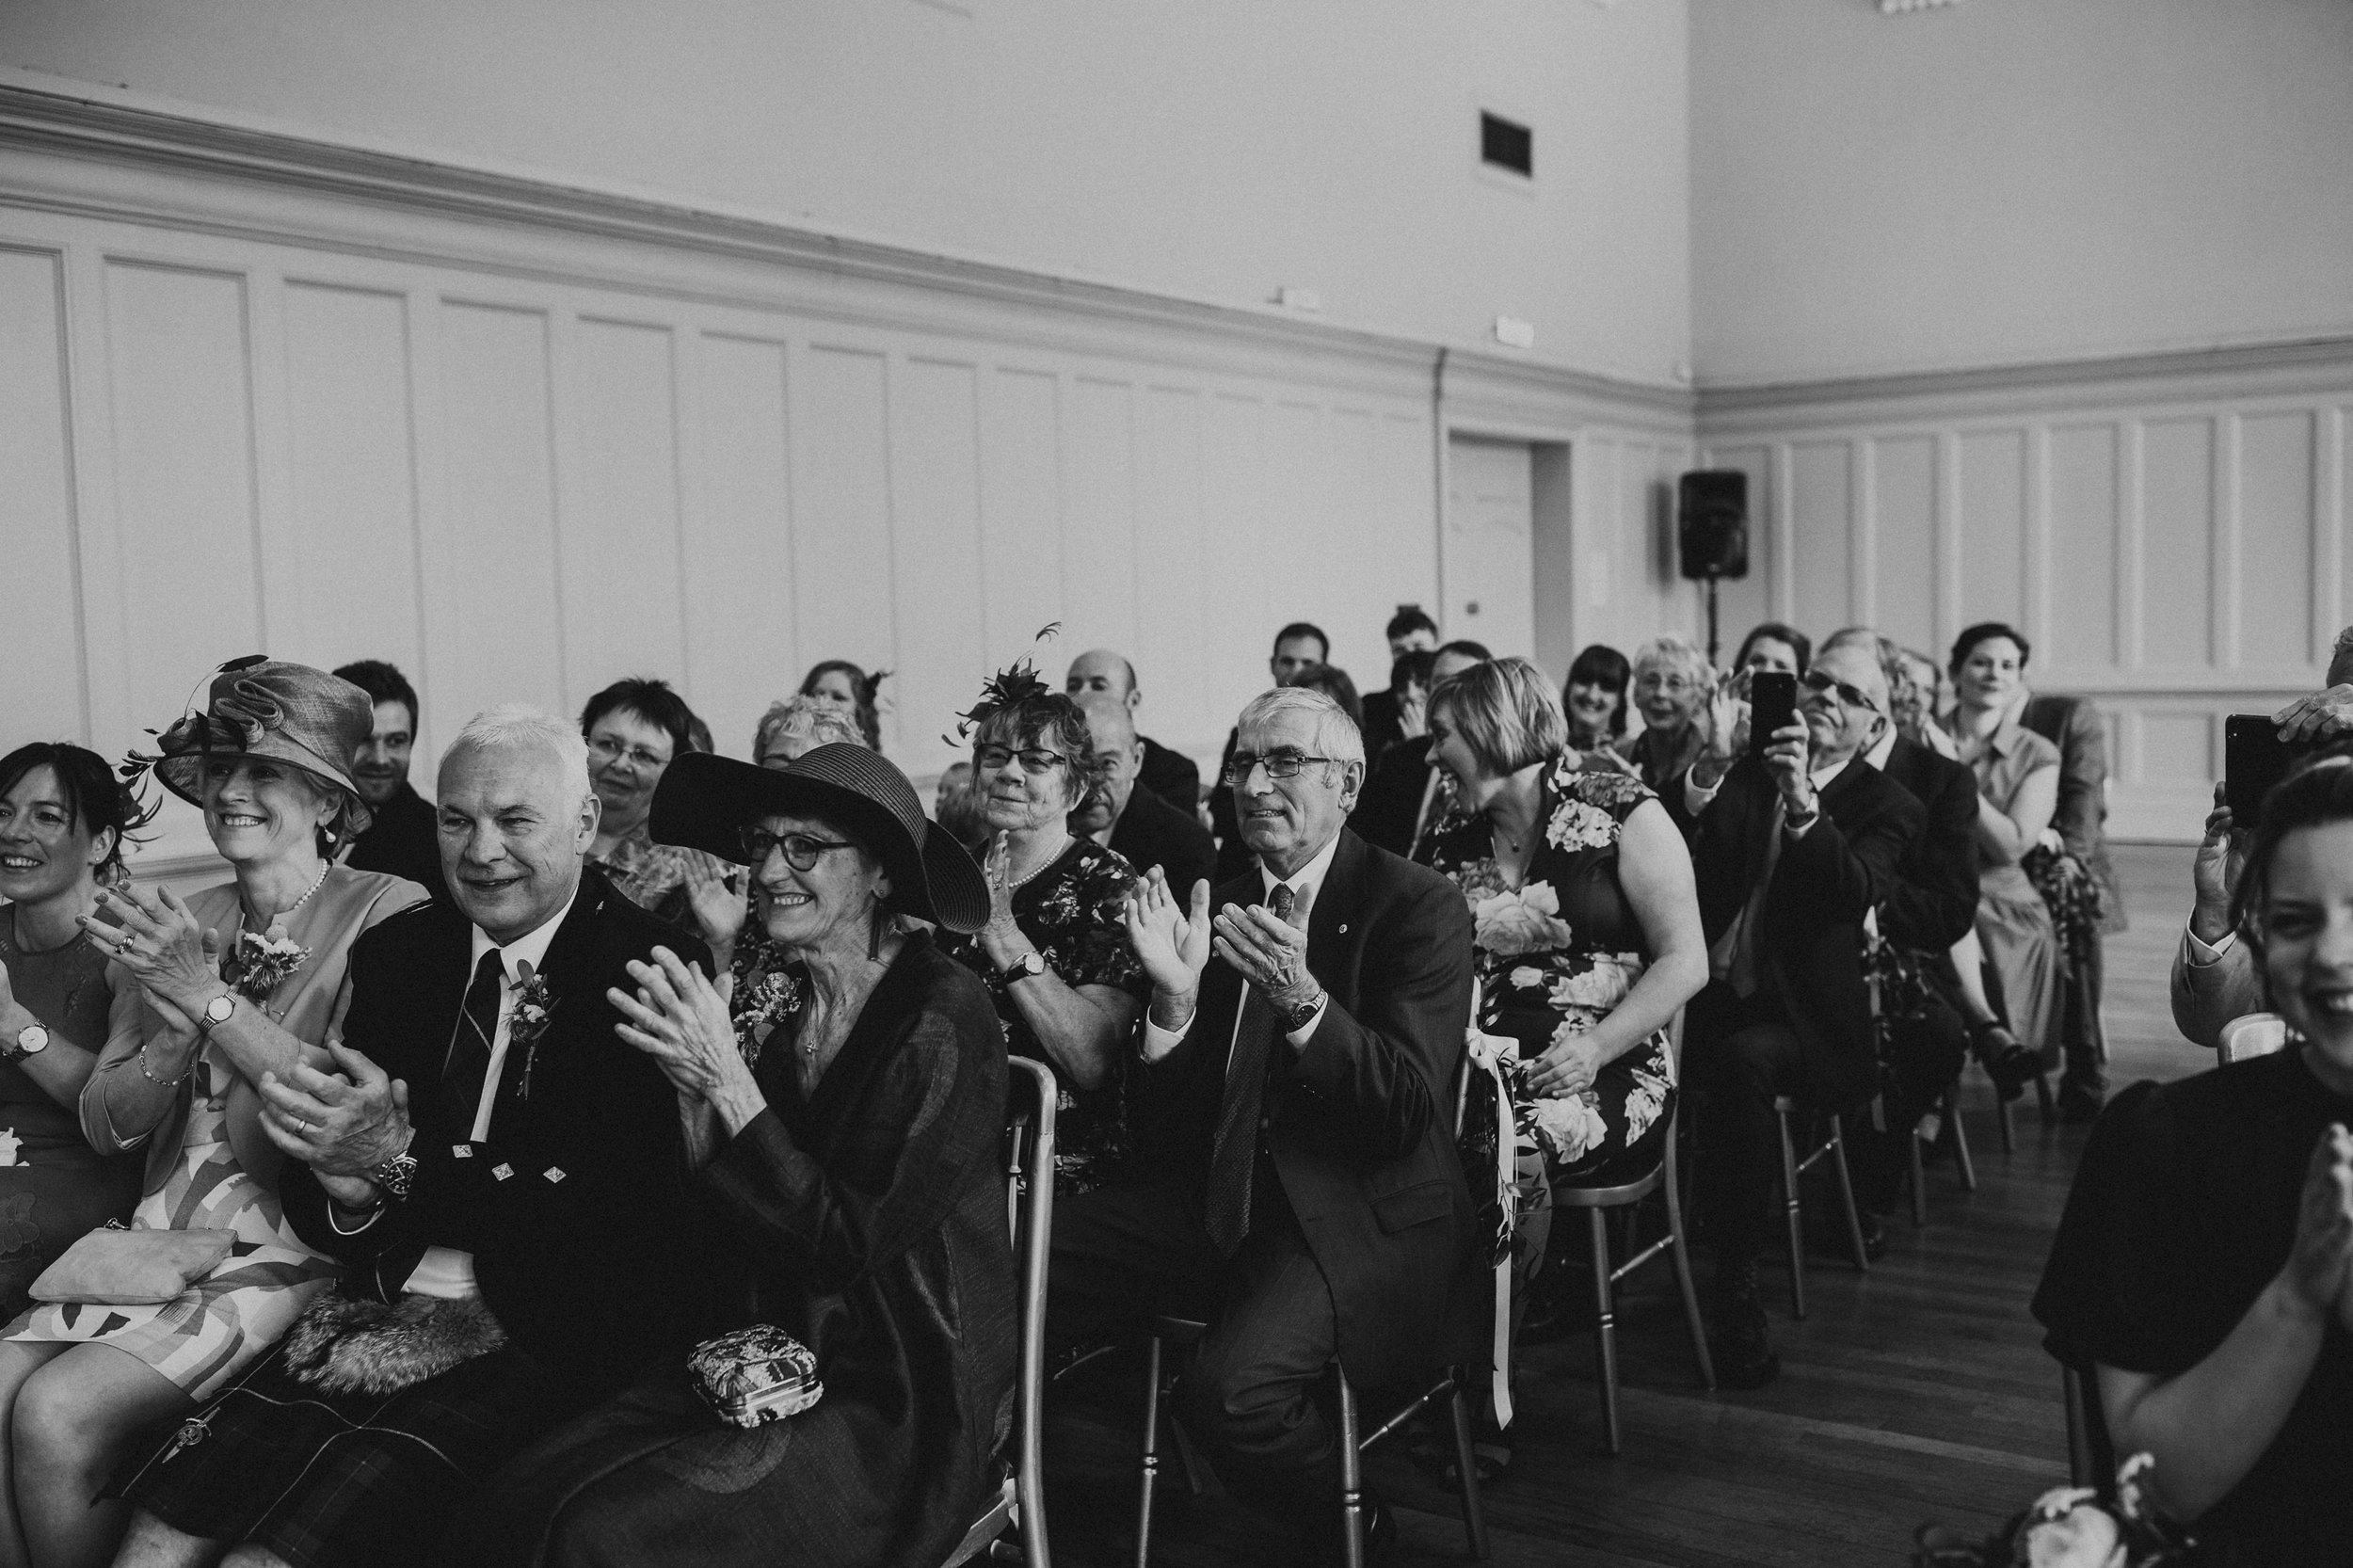 TIMBERYARD_EDINBURGH_WEDDING_PJ_PHILLIPS_PHOTOGRAPHY_85.jpg